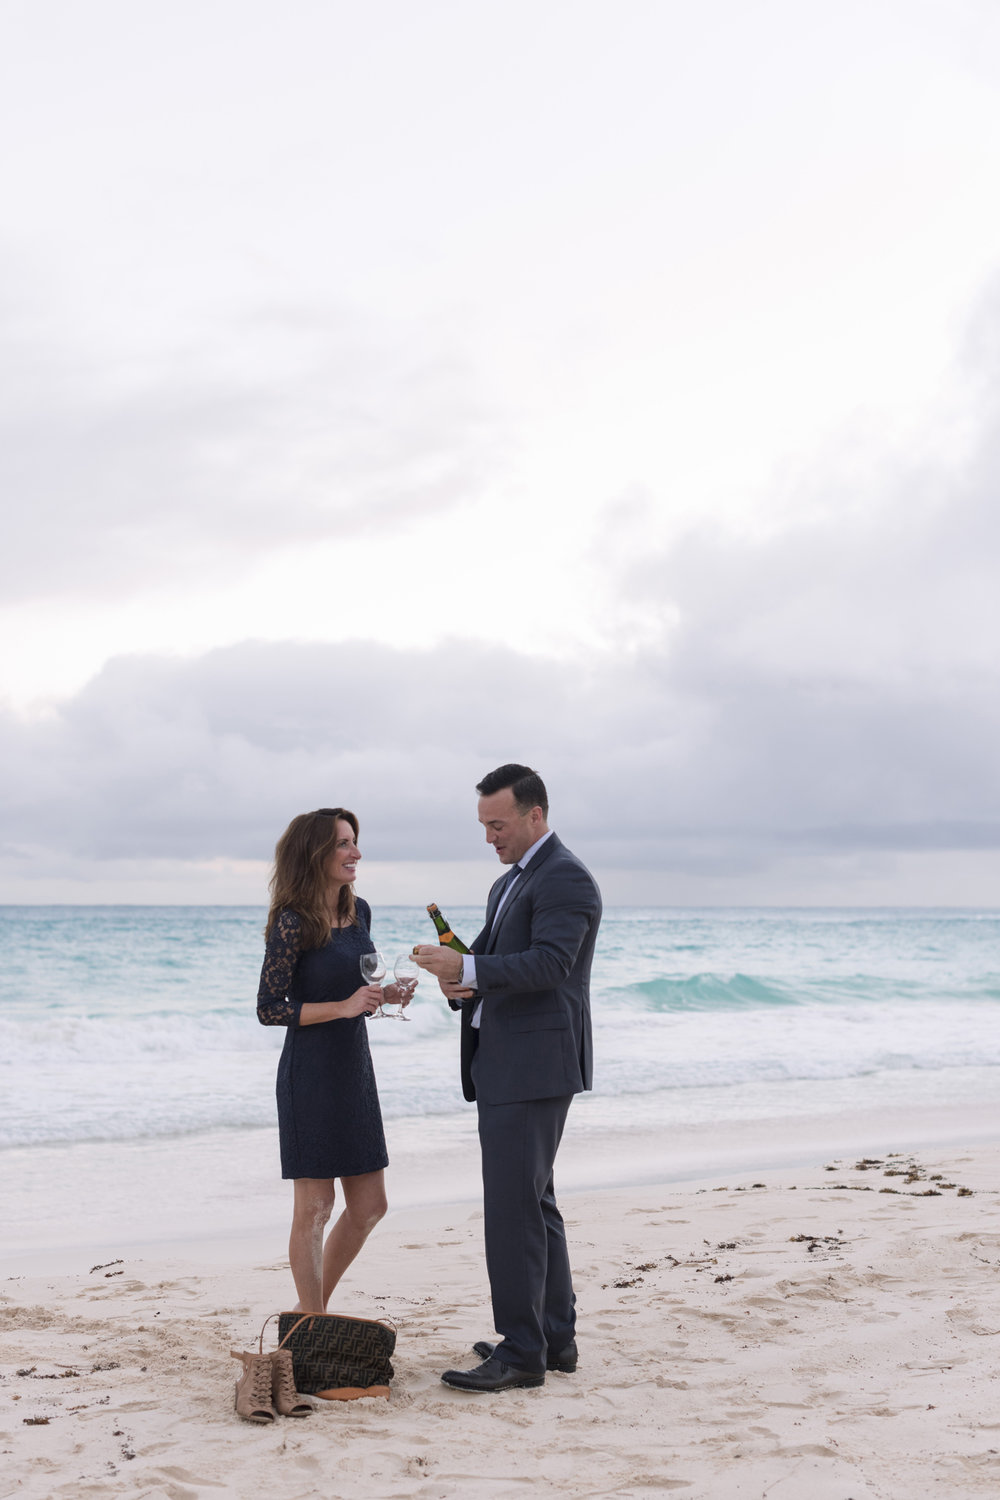 ©FianderFoto_Doug_Mary_Proposal_053.jpg